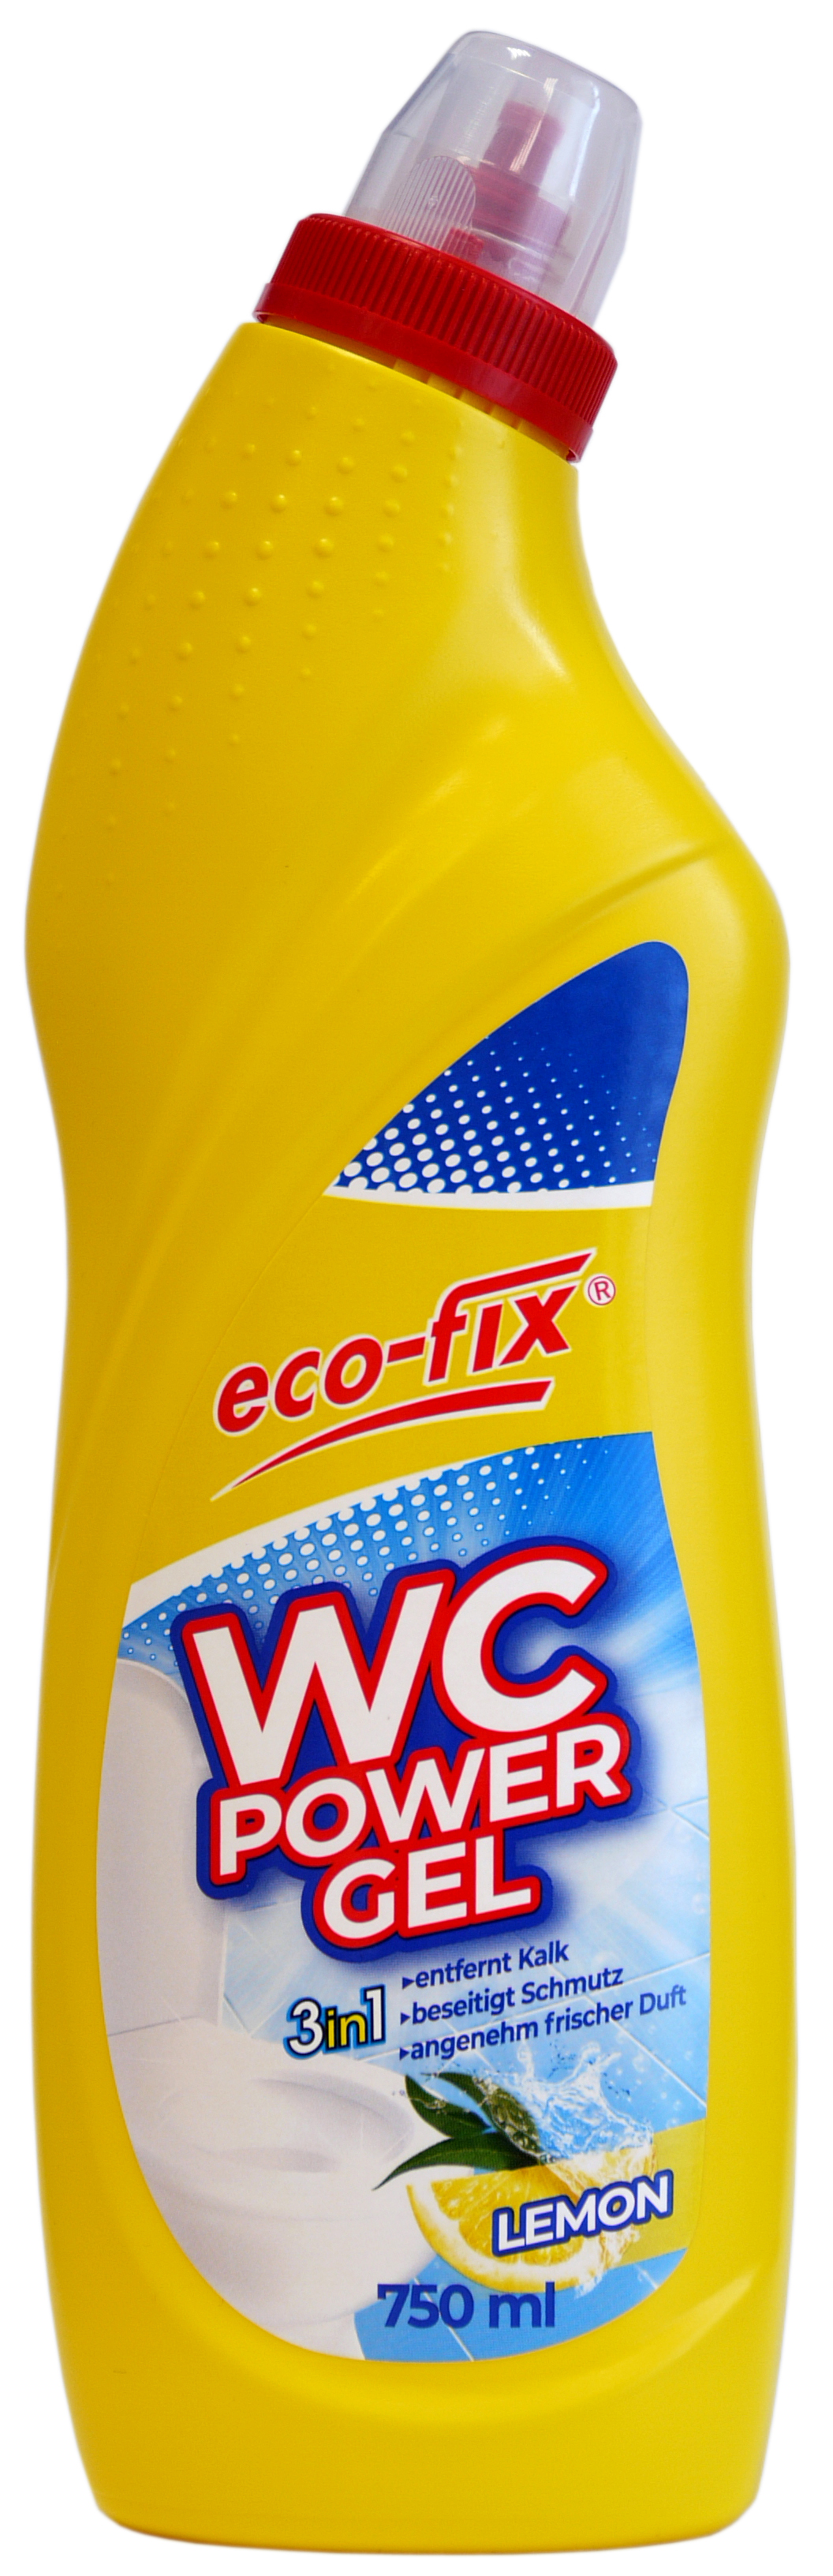 01868 - eco-fix WC Power Gel 750ml- Lavendel